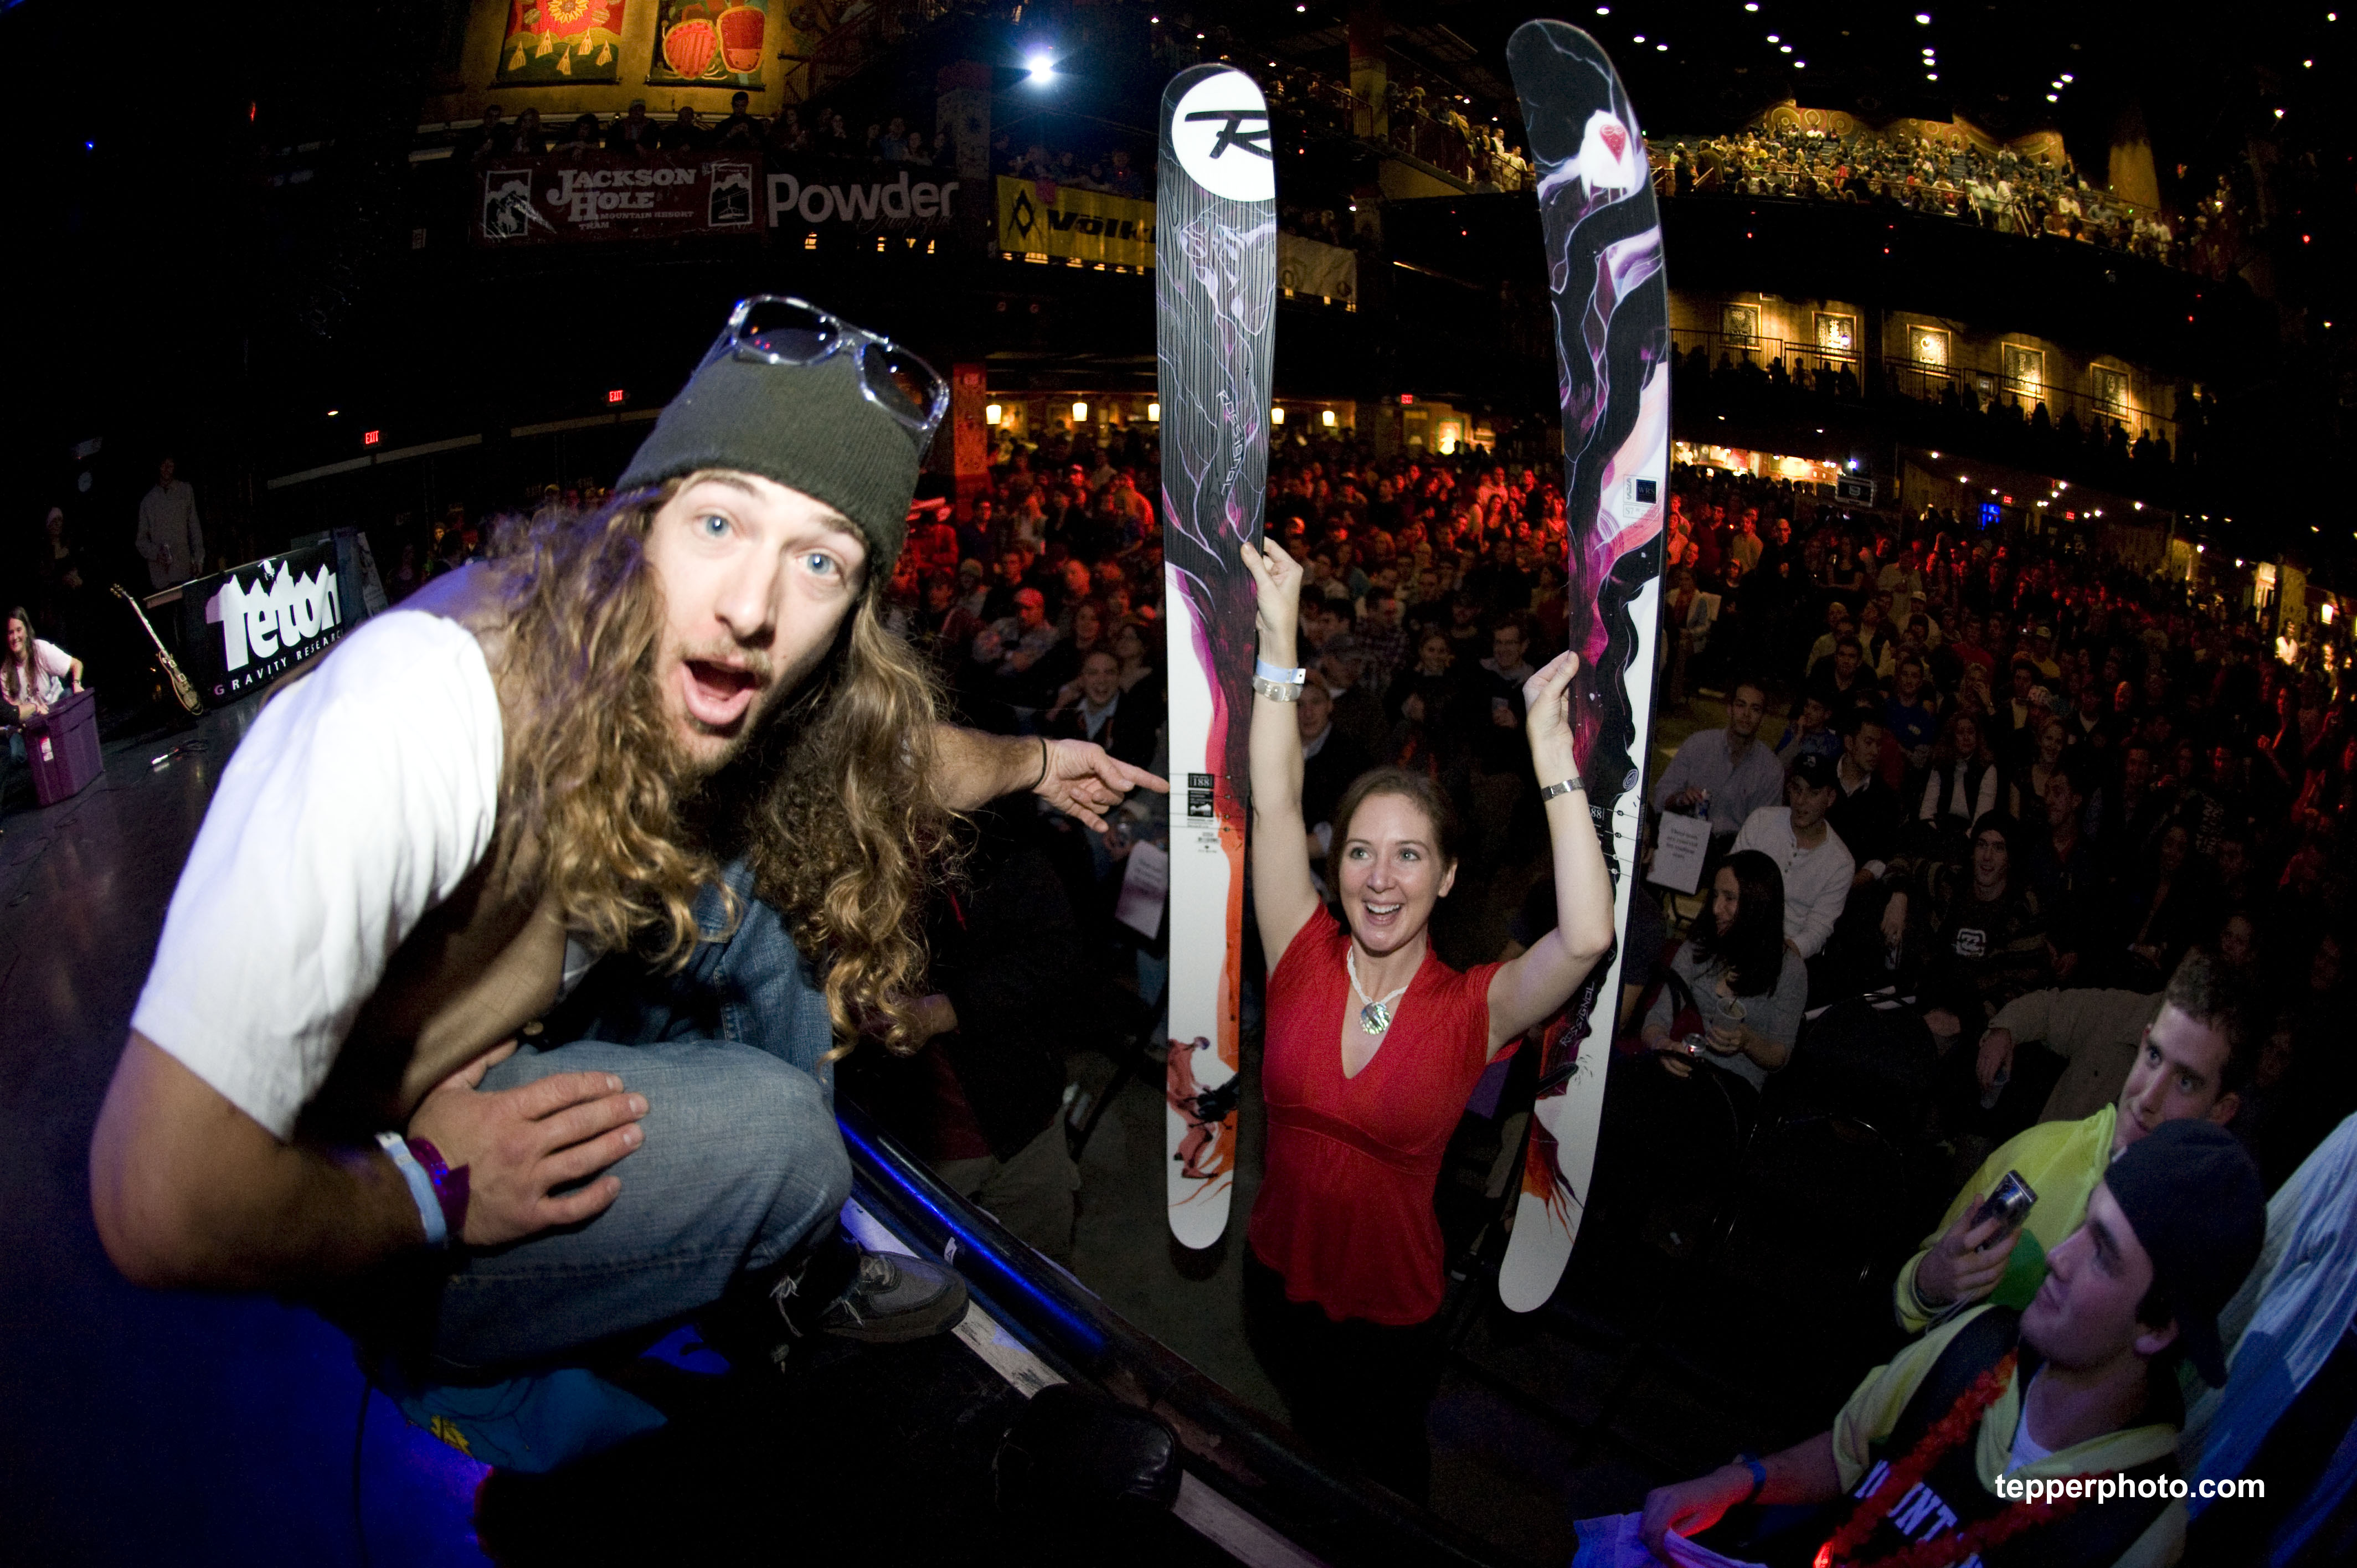 Sage Cattabriga-Alosa gives a stoked girl some fresh boards